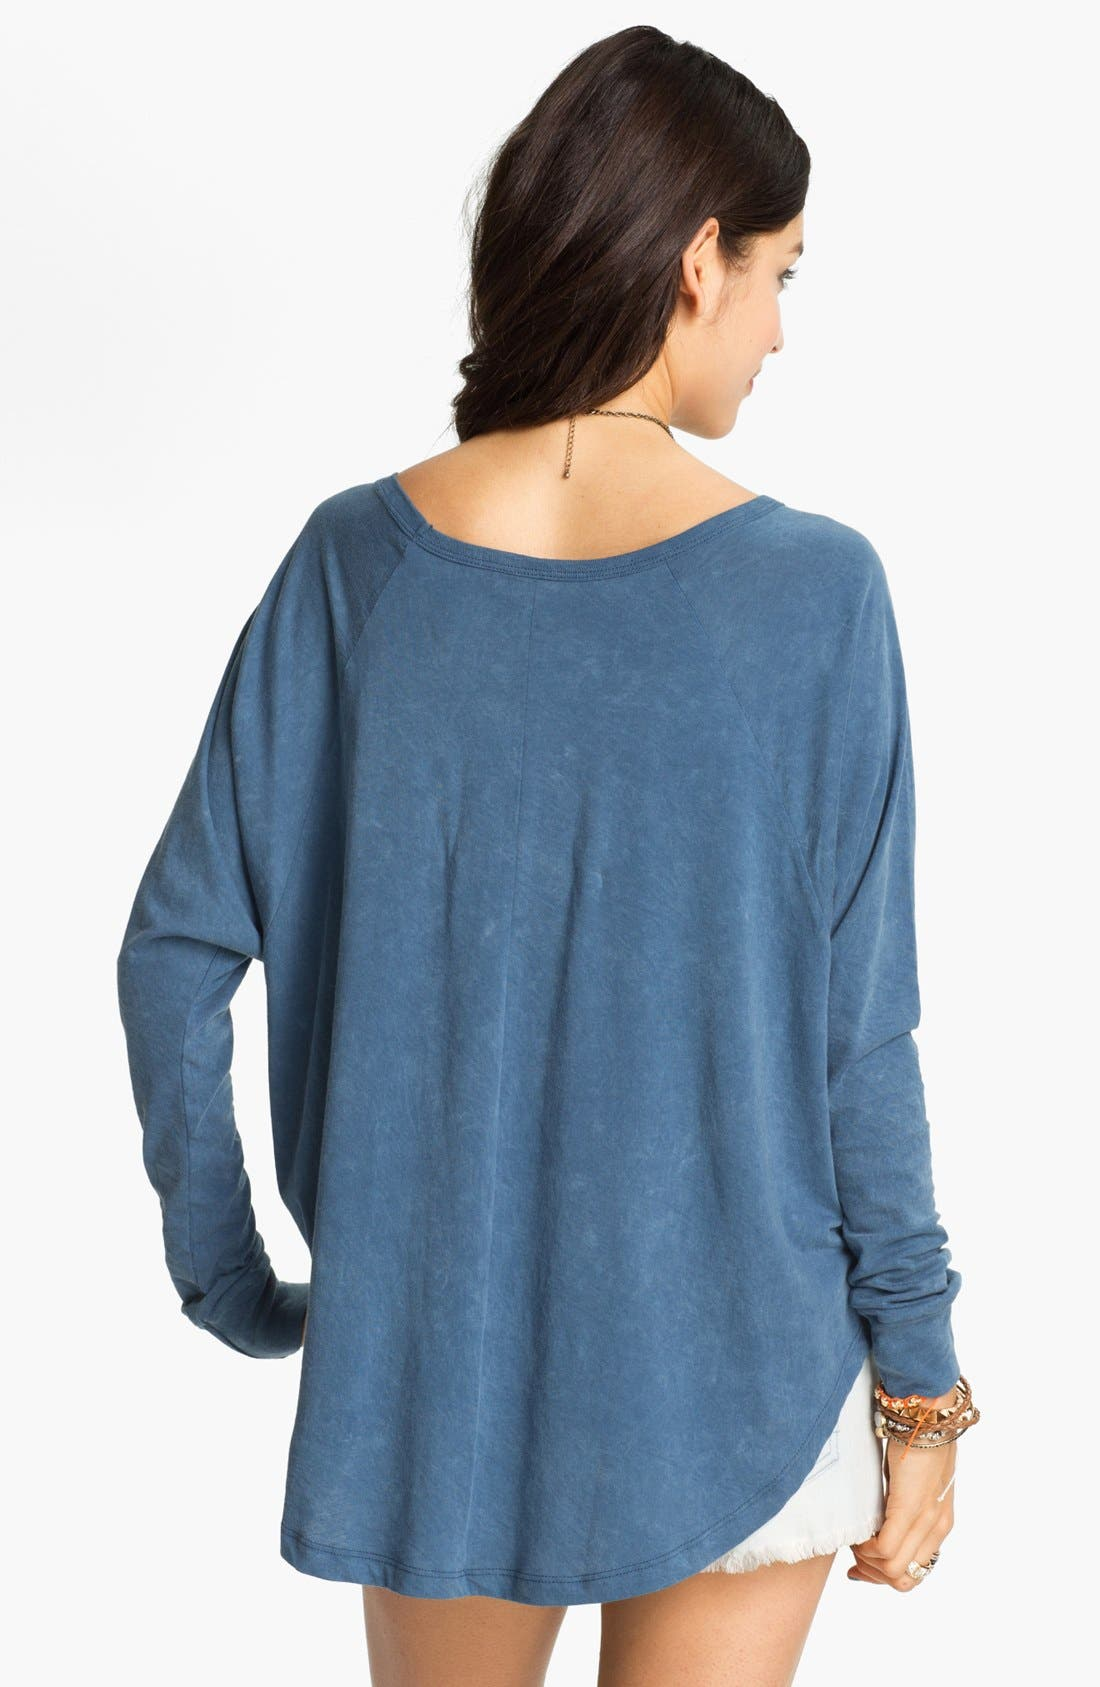 Alternate Image 2  - Project Social T Vintage Wash Batwing Top (Juniors)